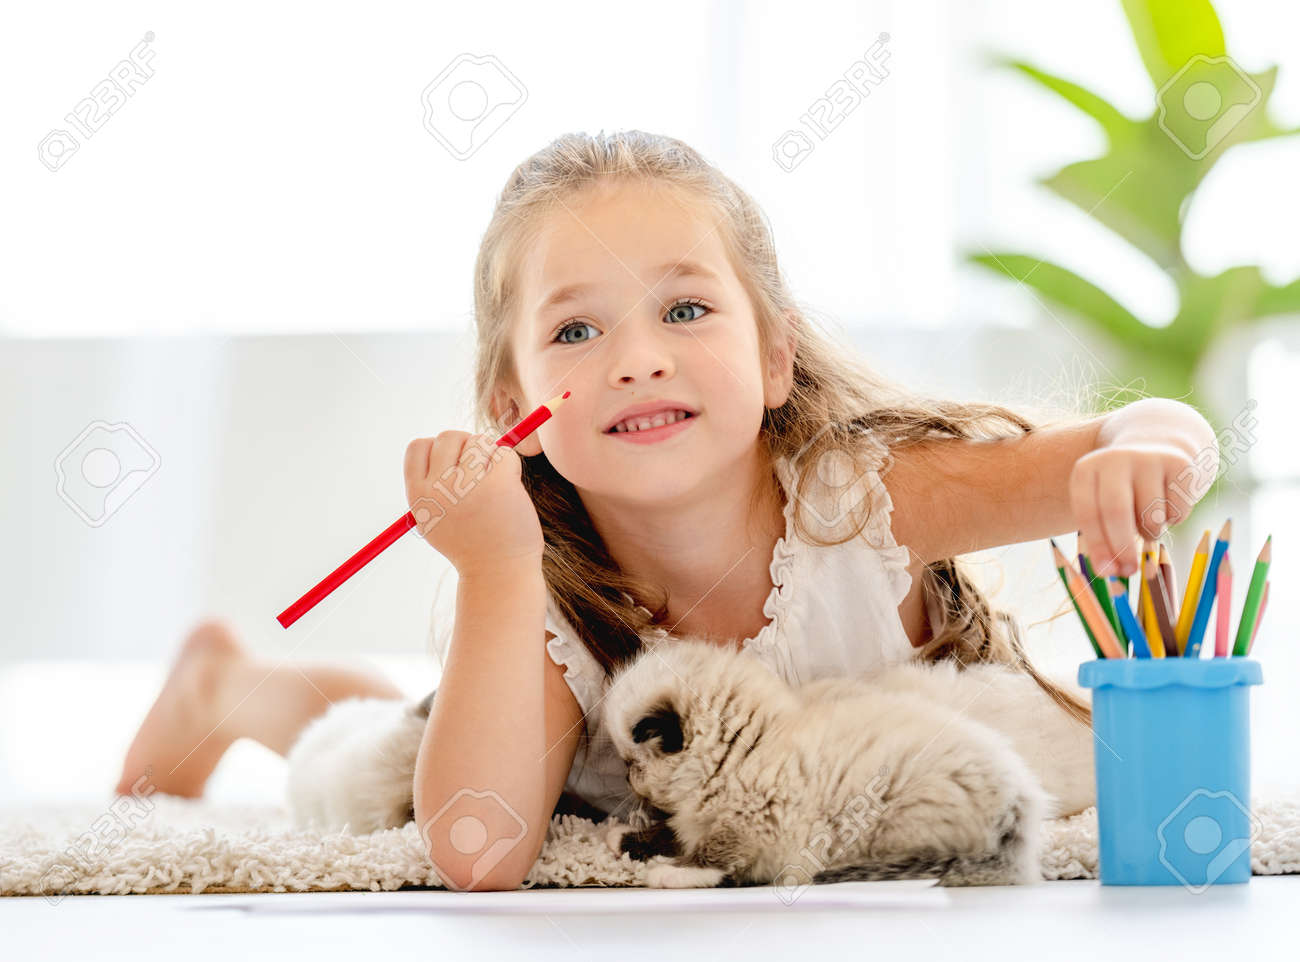 Girl painting with ragdoll kittens - 173455740